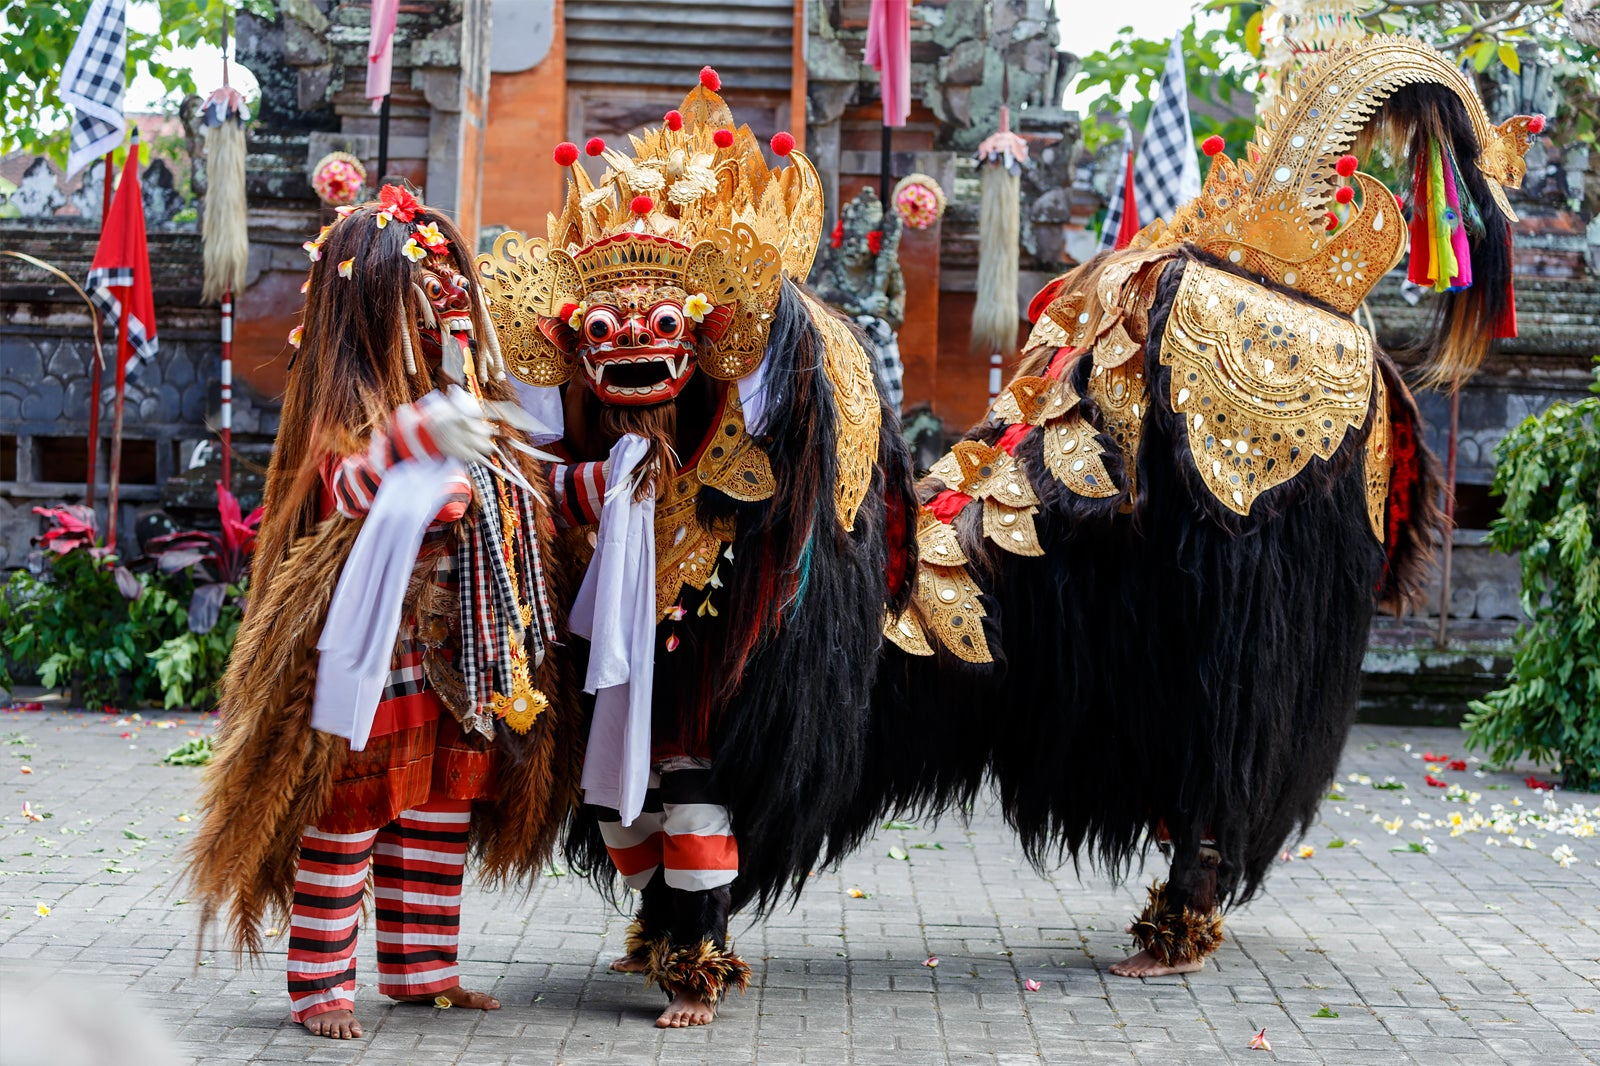 Barong and Kris Dance in Bali - Bali's Famous Mythological Dance ...